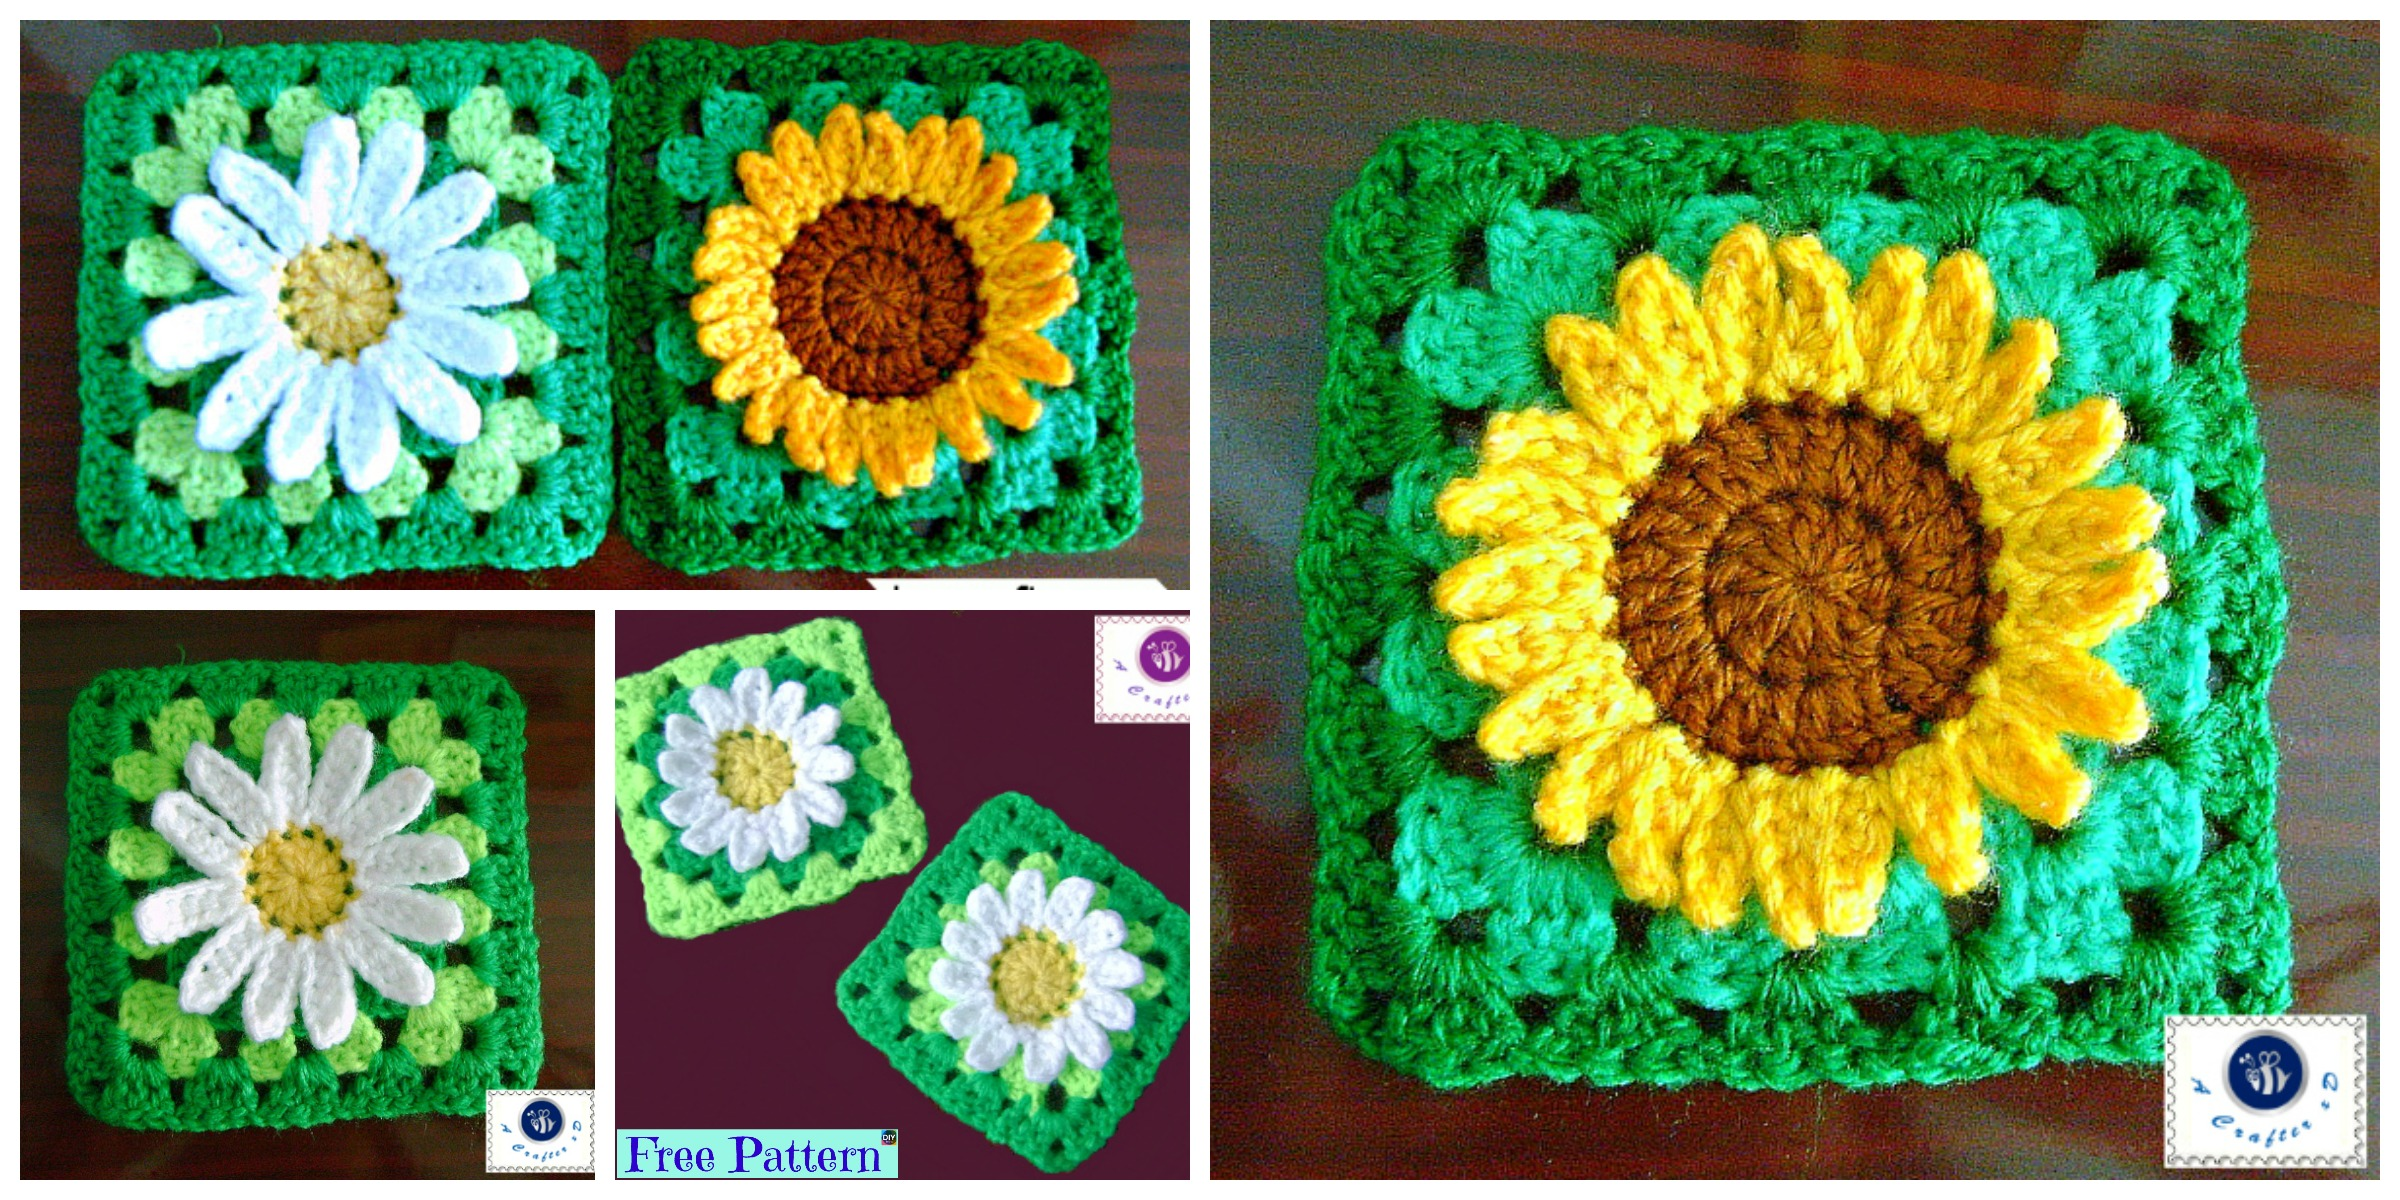 Crochet Sunflower Granny Square Free Pattern Diy 4 Ever